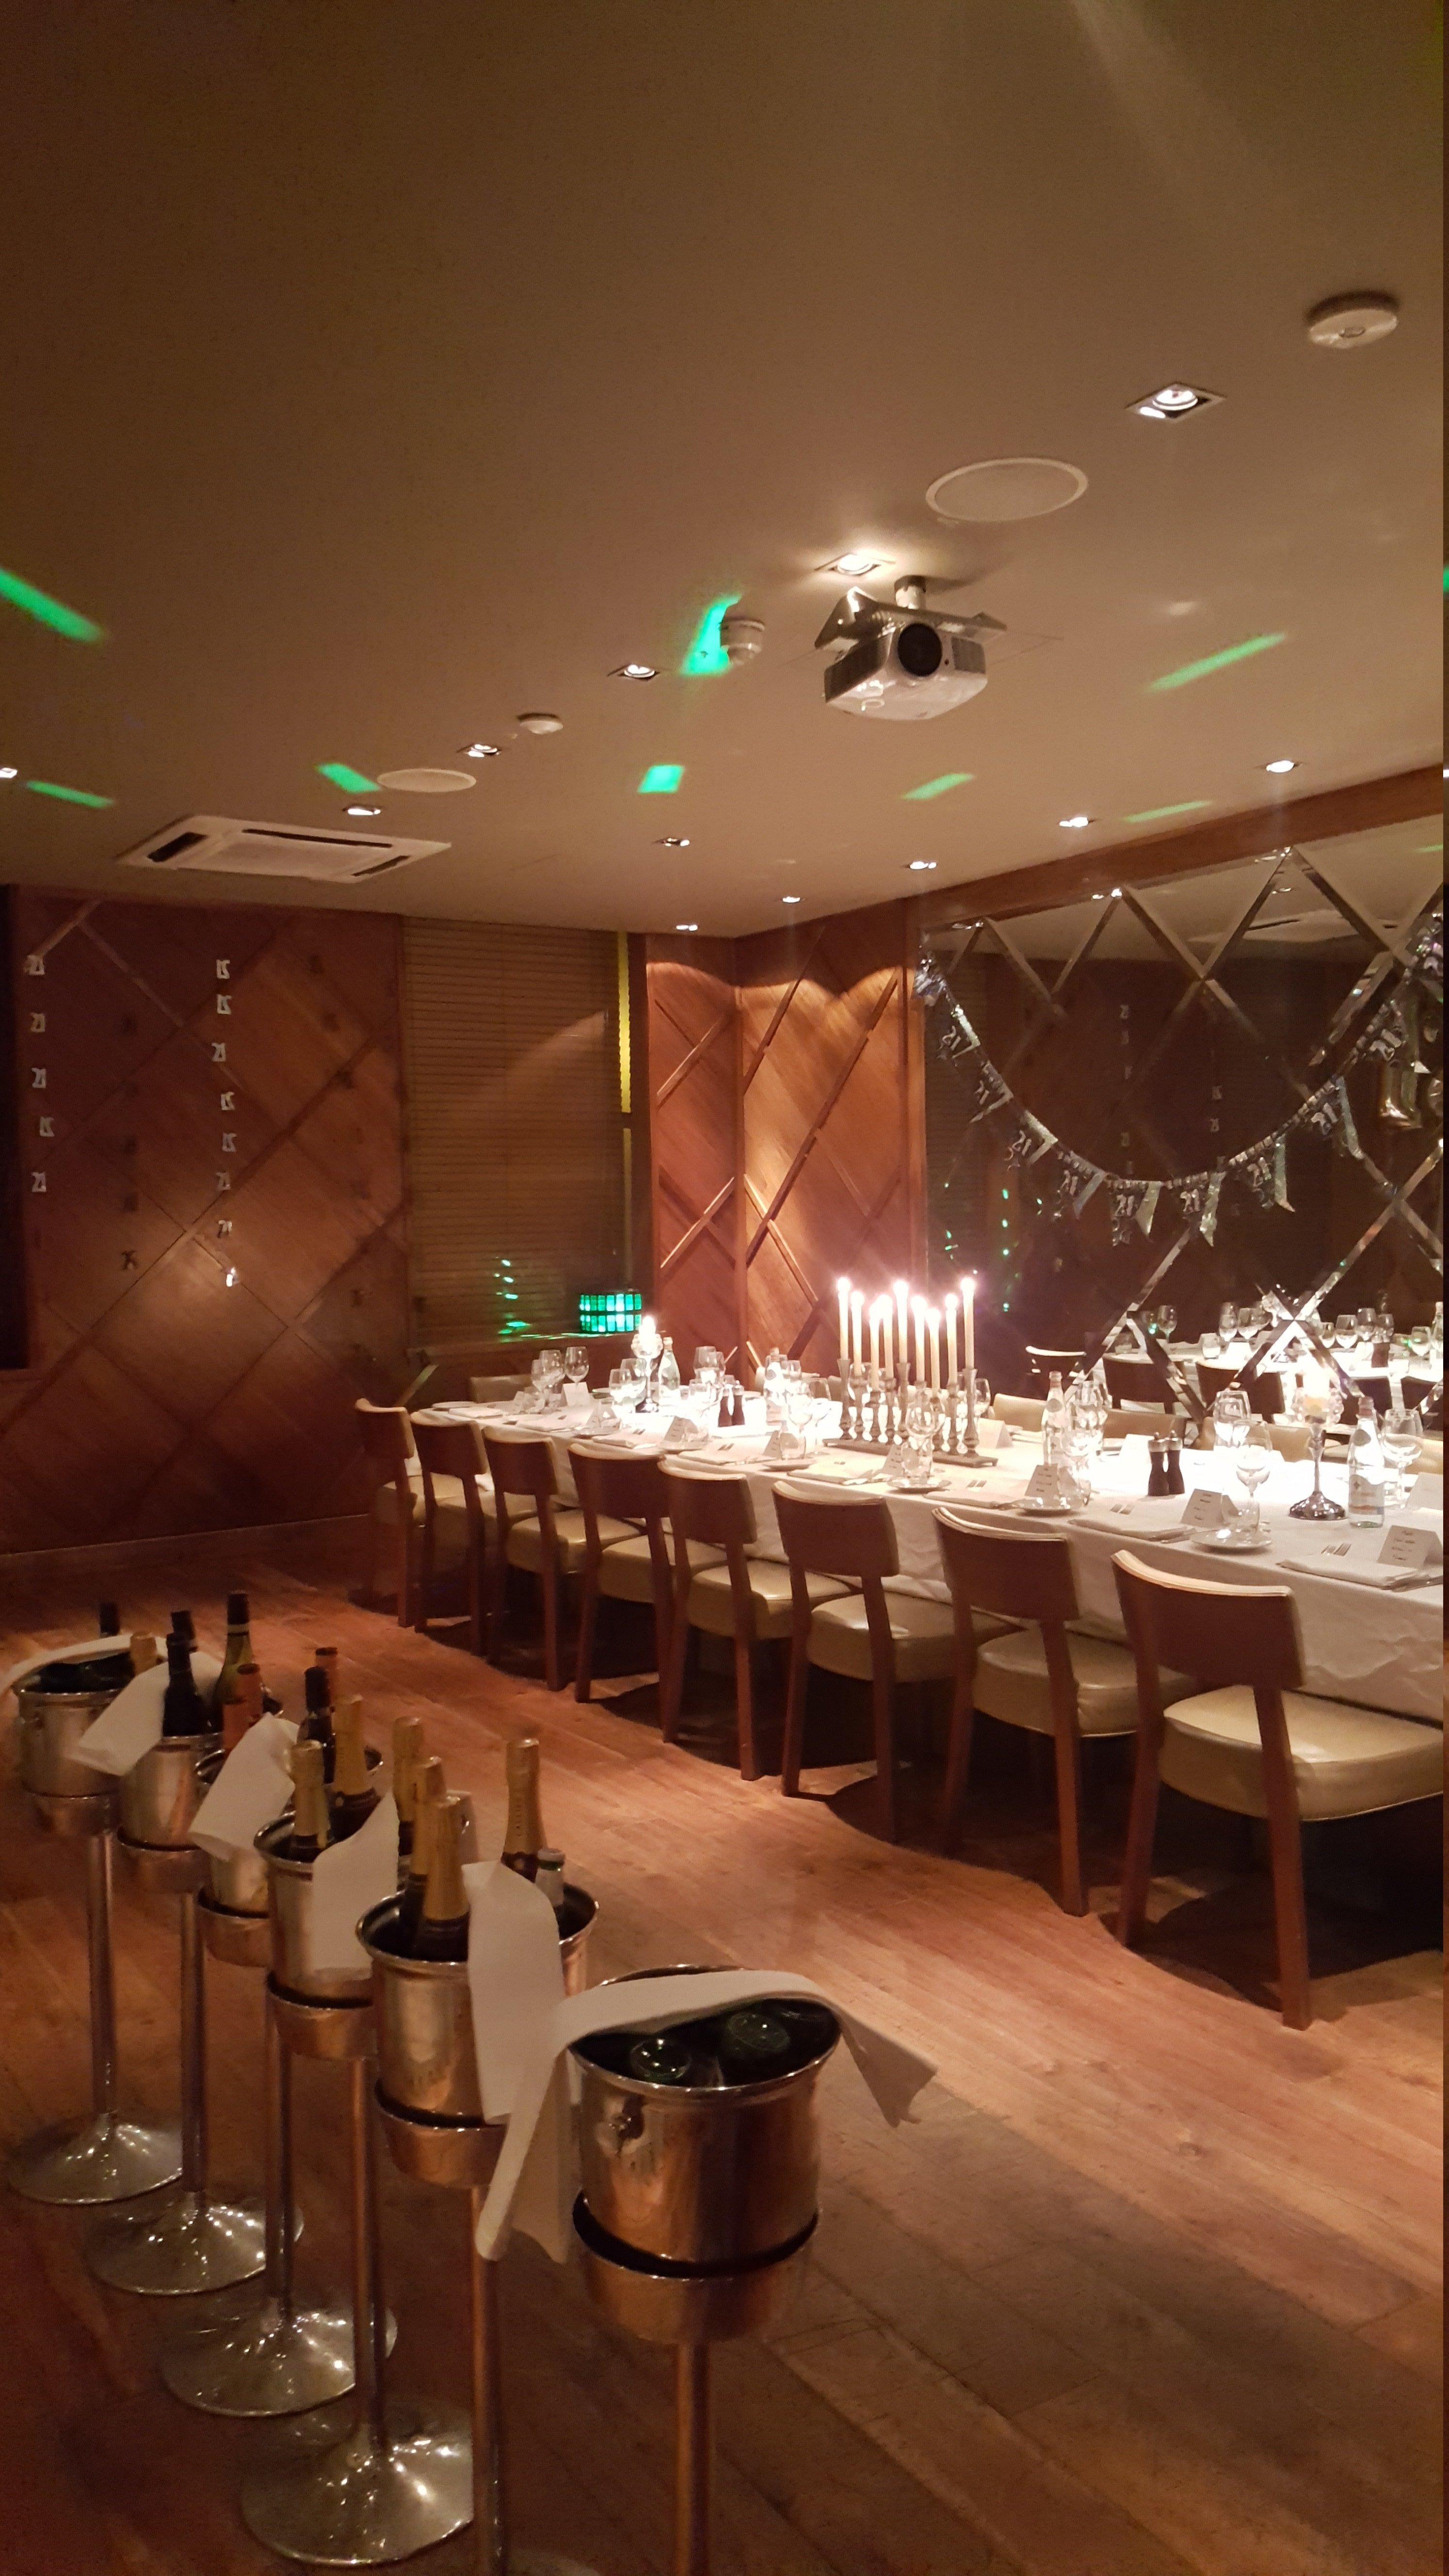 The restaurant bar grill harrogate restaurant reviews for O bar private dining room